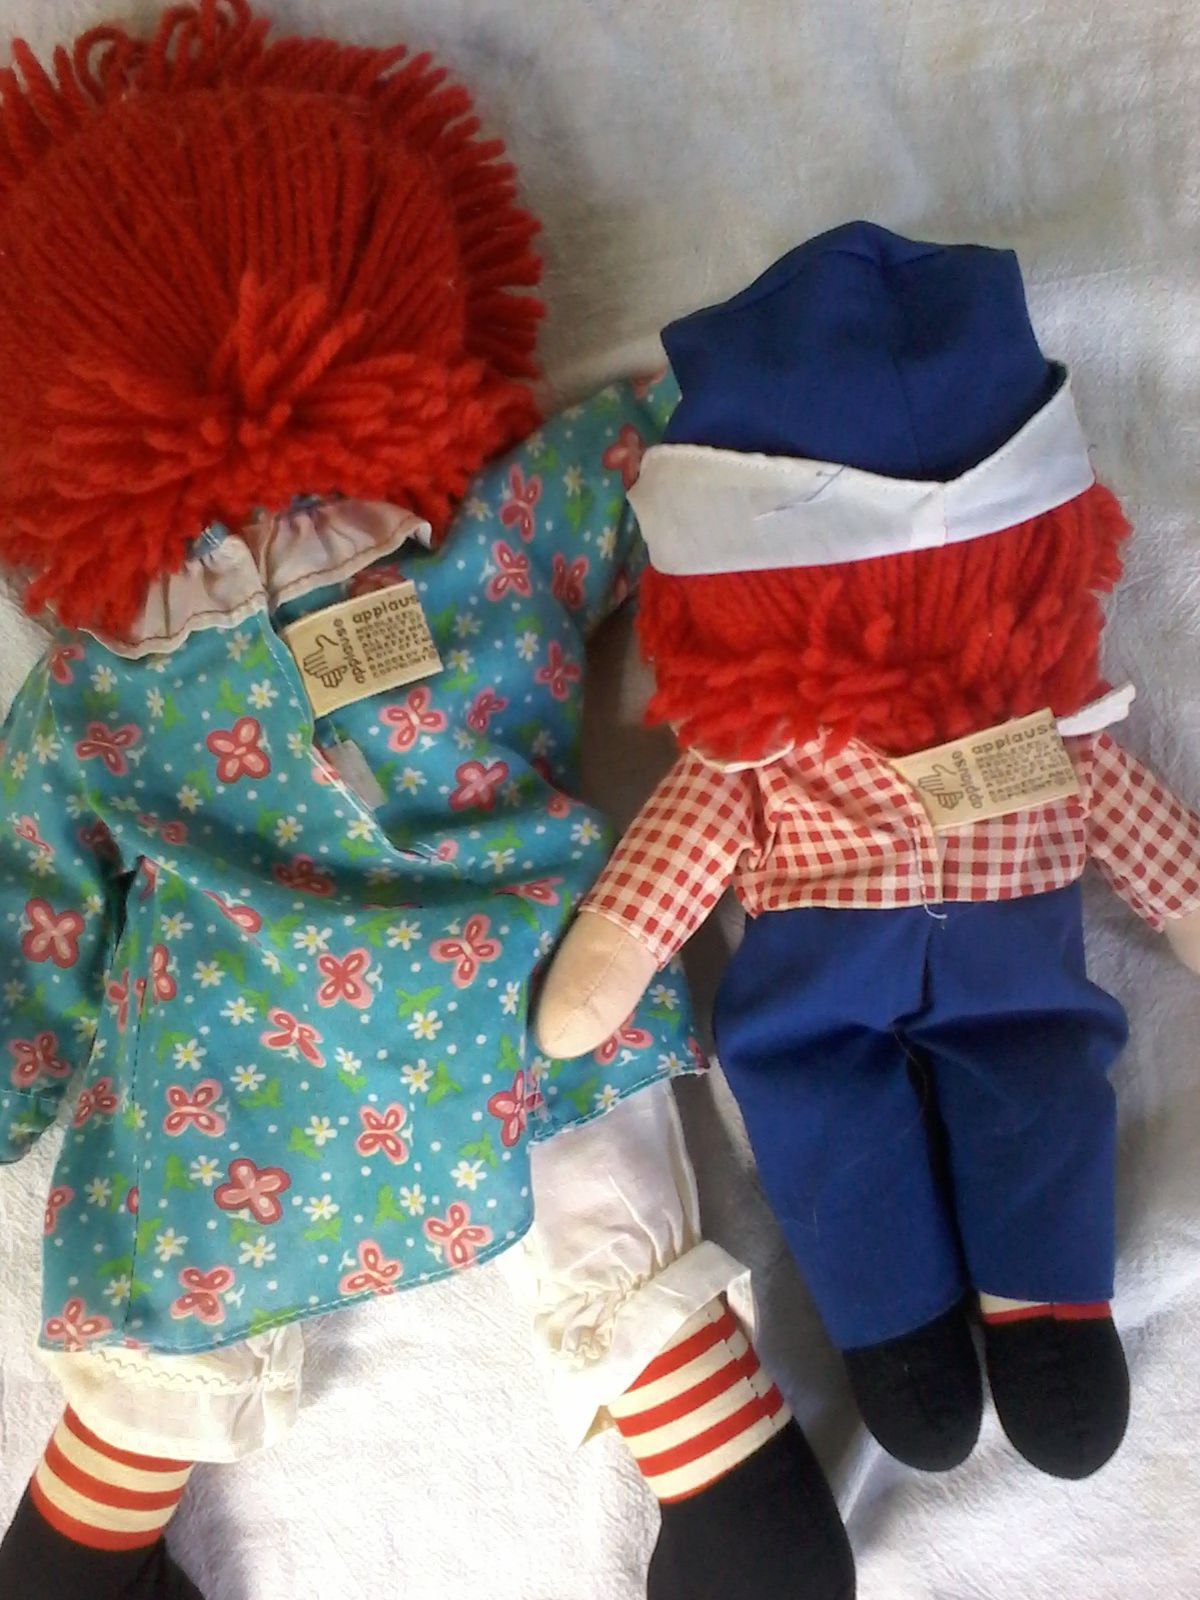 RAGGEDY ANN AND ANDY BY APPLAUSE